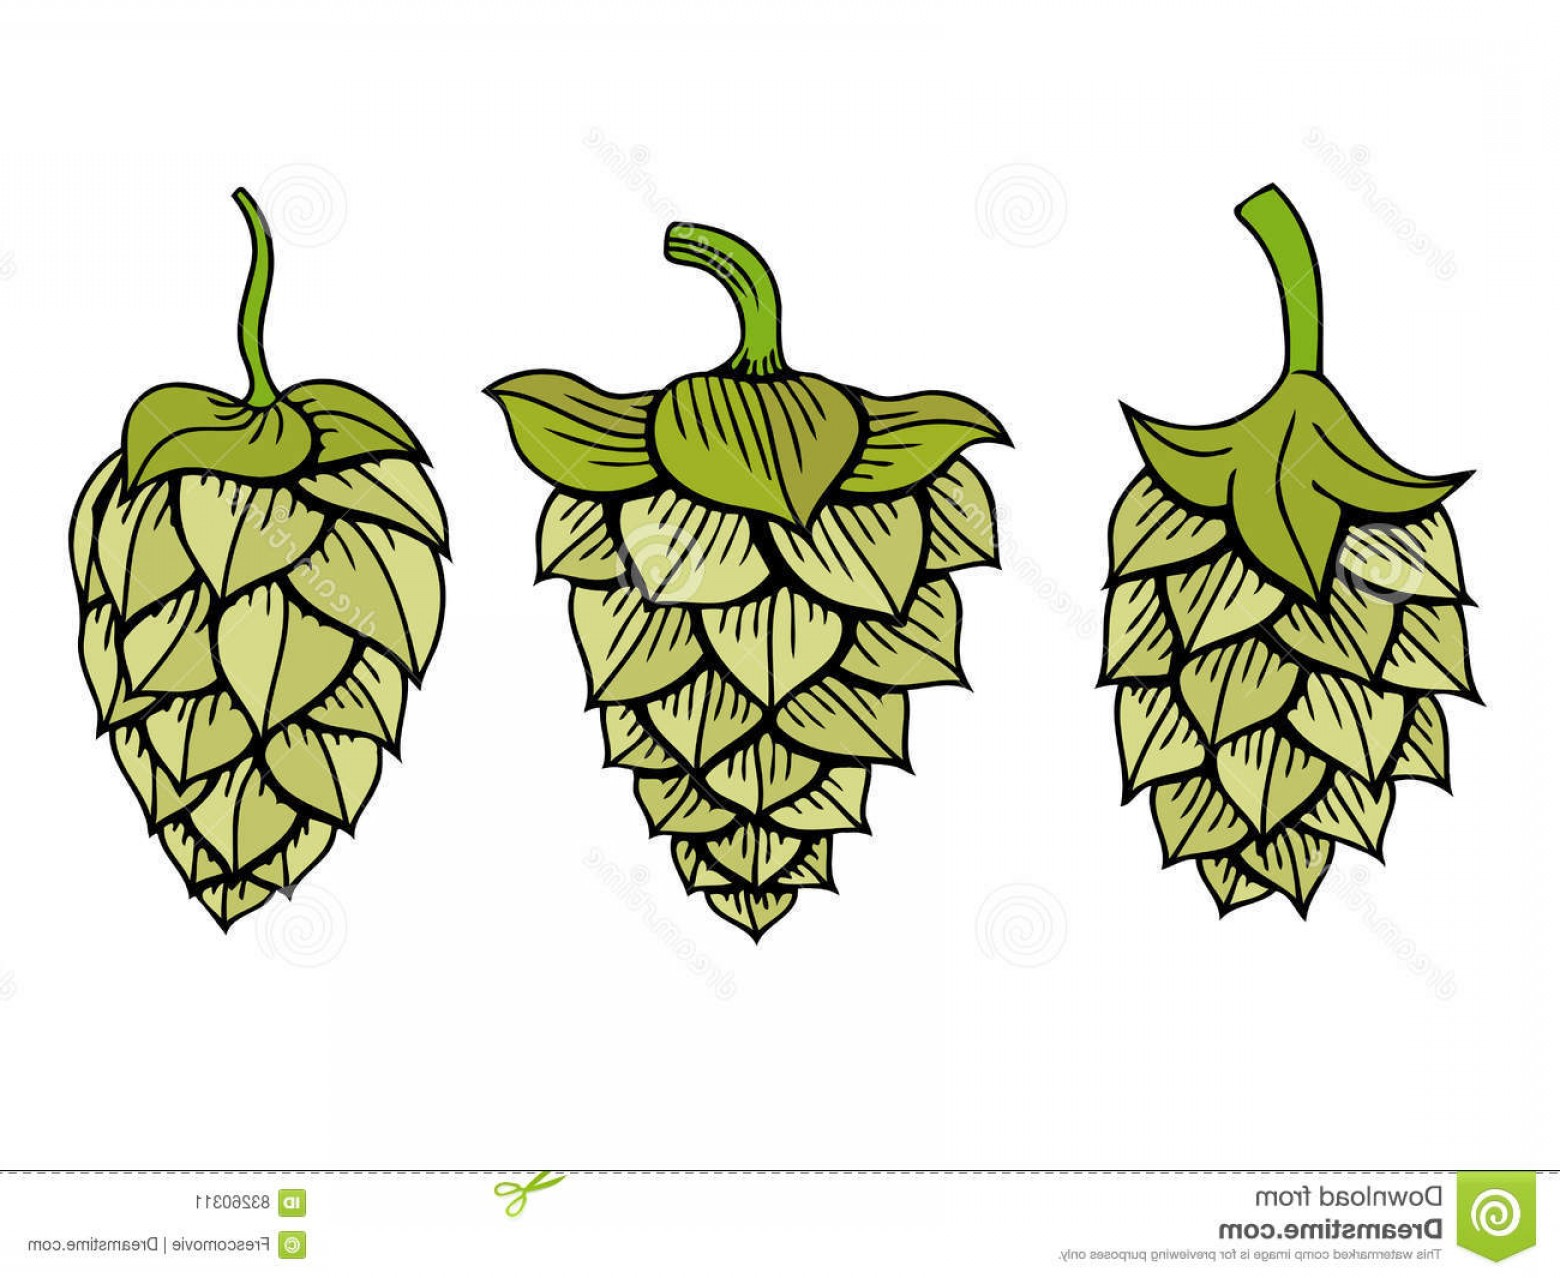 Hops Vector Art: Stock Illustration Hops Vector Visual Graphic Set Icon Logo Ideal Beer Stout Ale Lager Bitter Labels Packaging Etc Hop Herb Plant Image